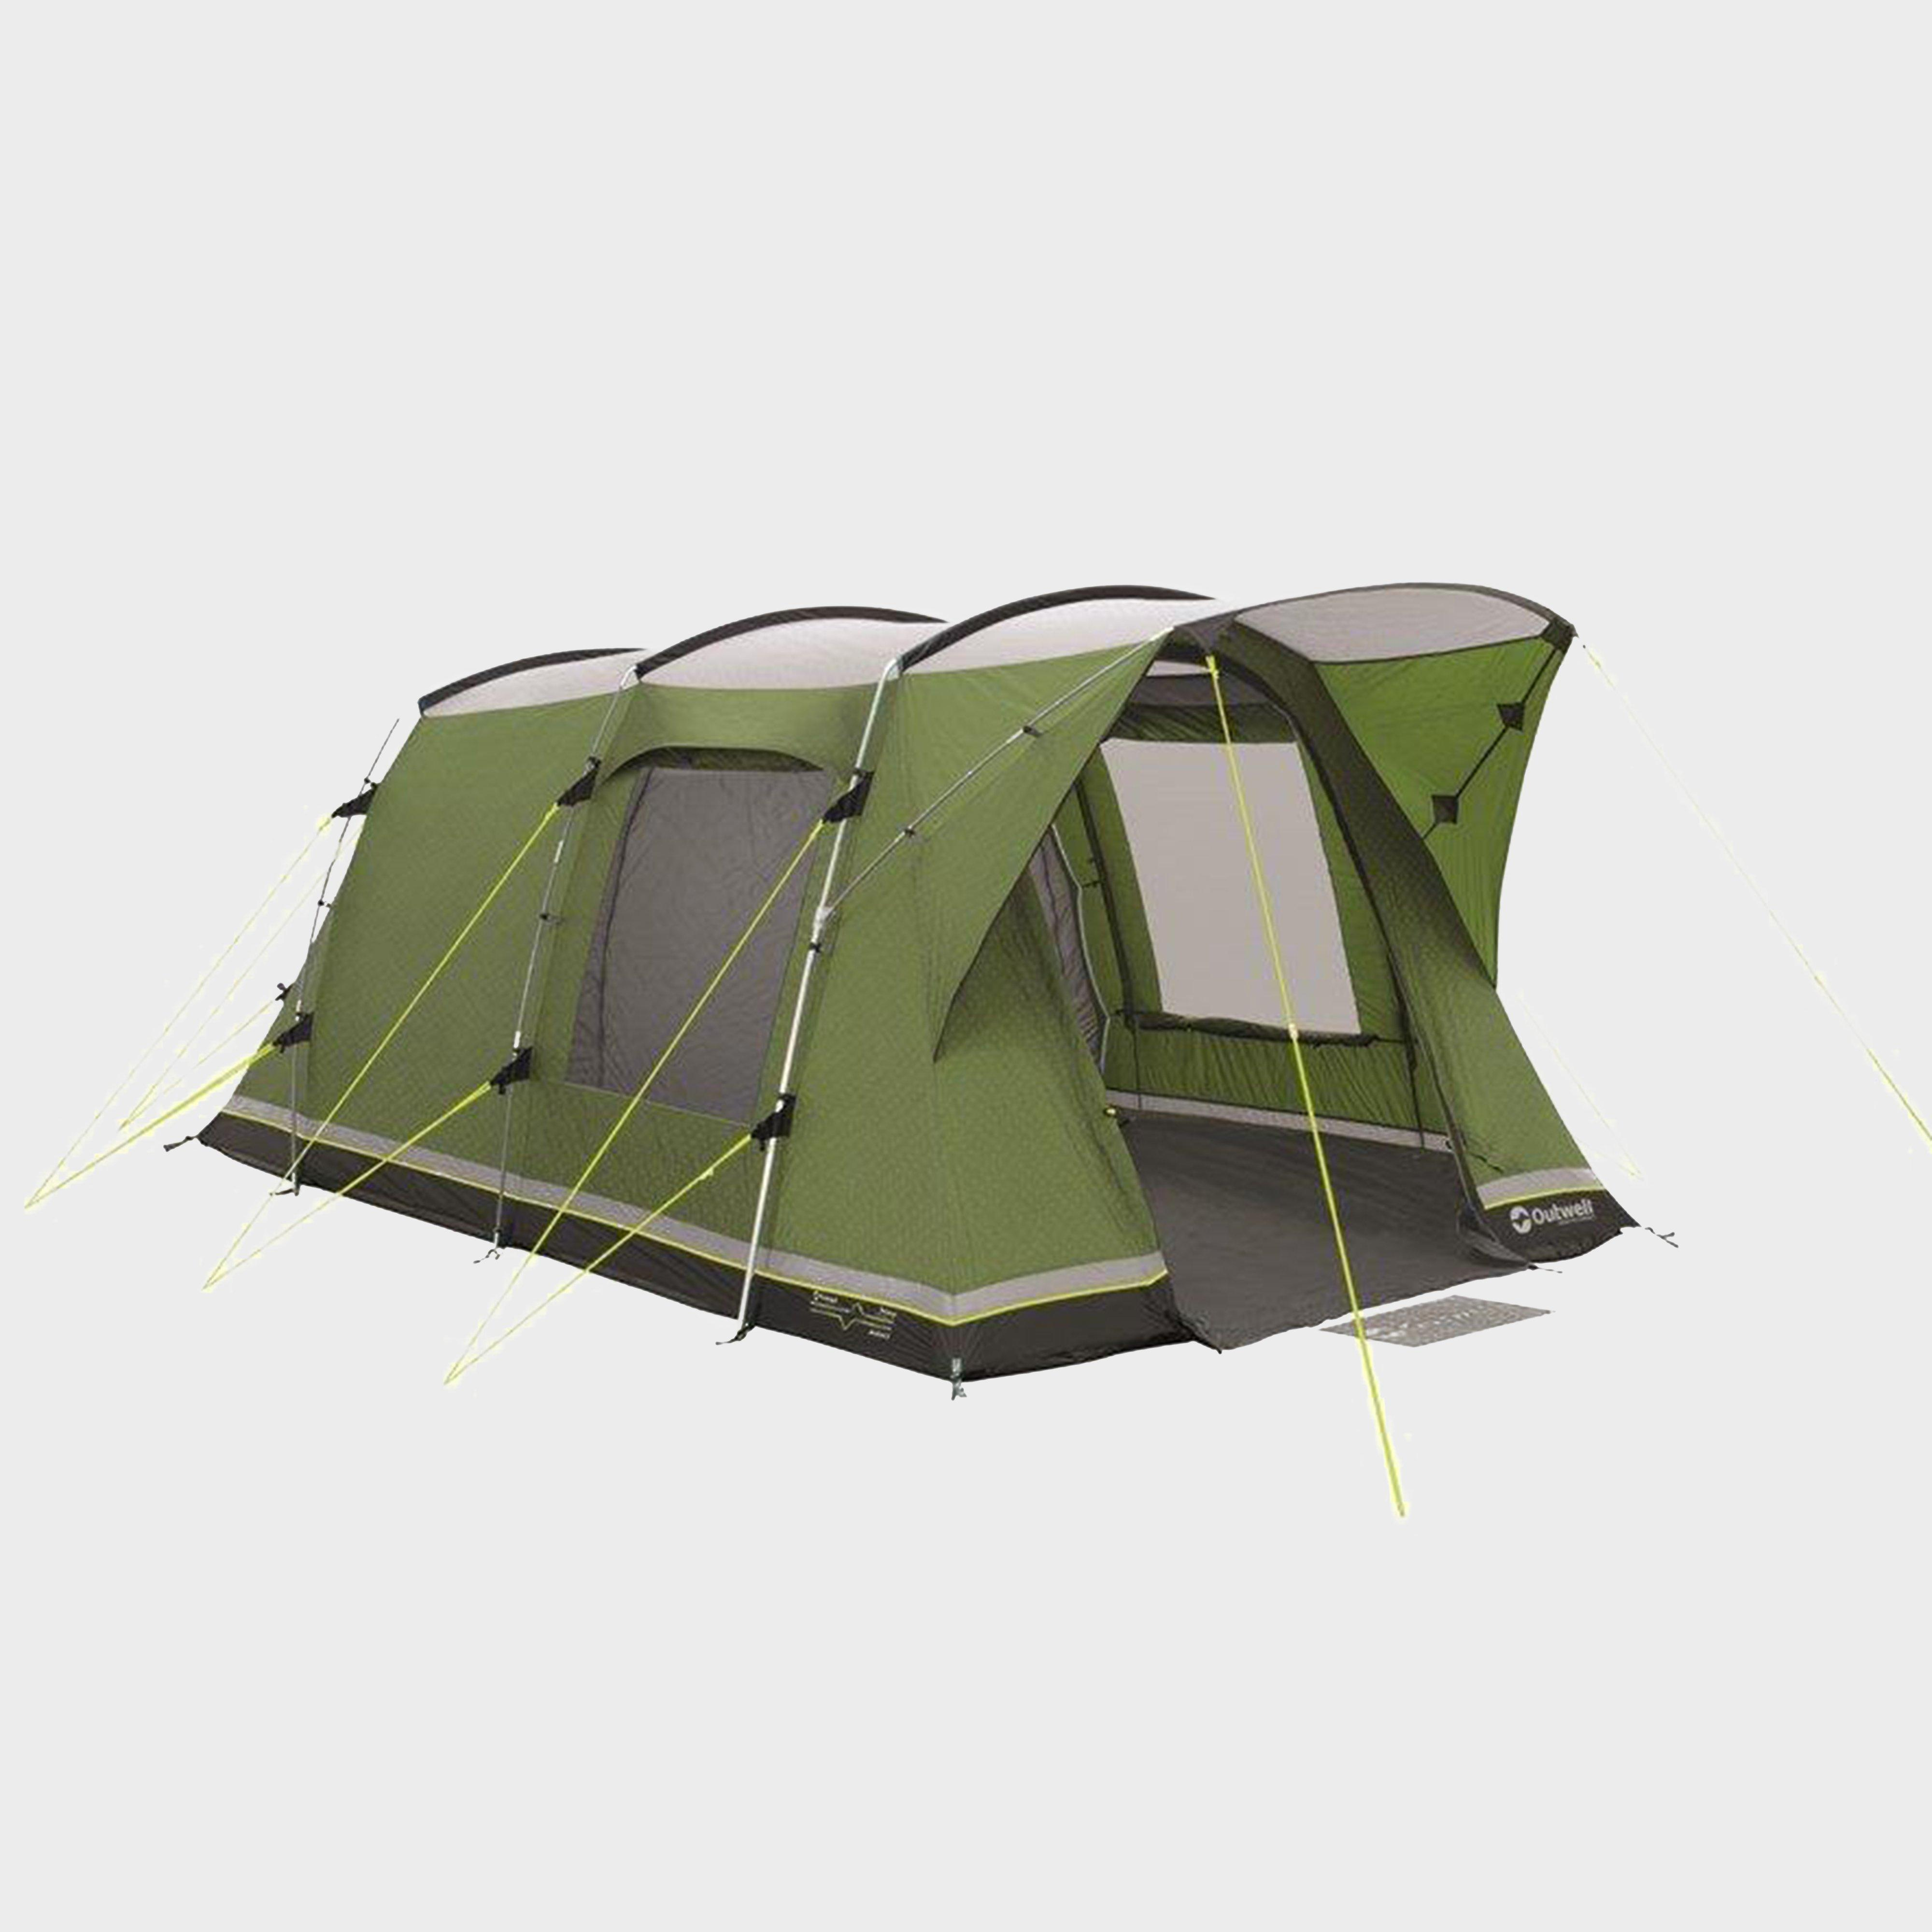 Outwell Birdland 3 3 Person Tent Green